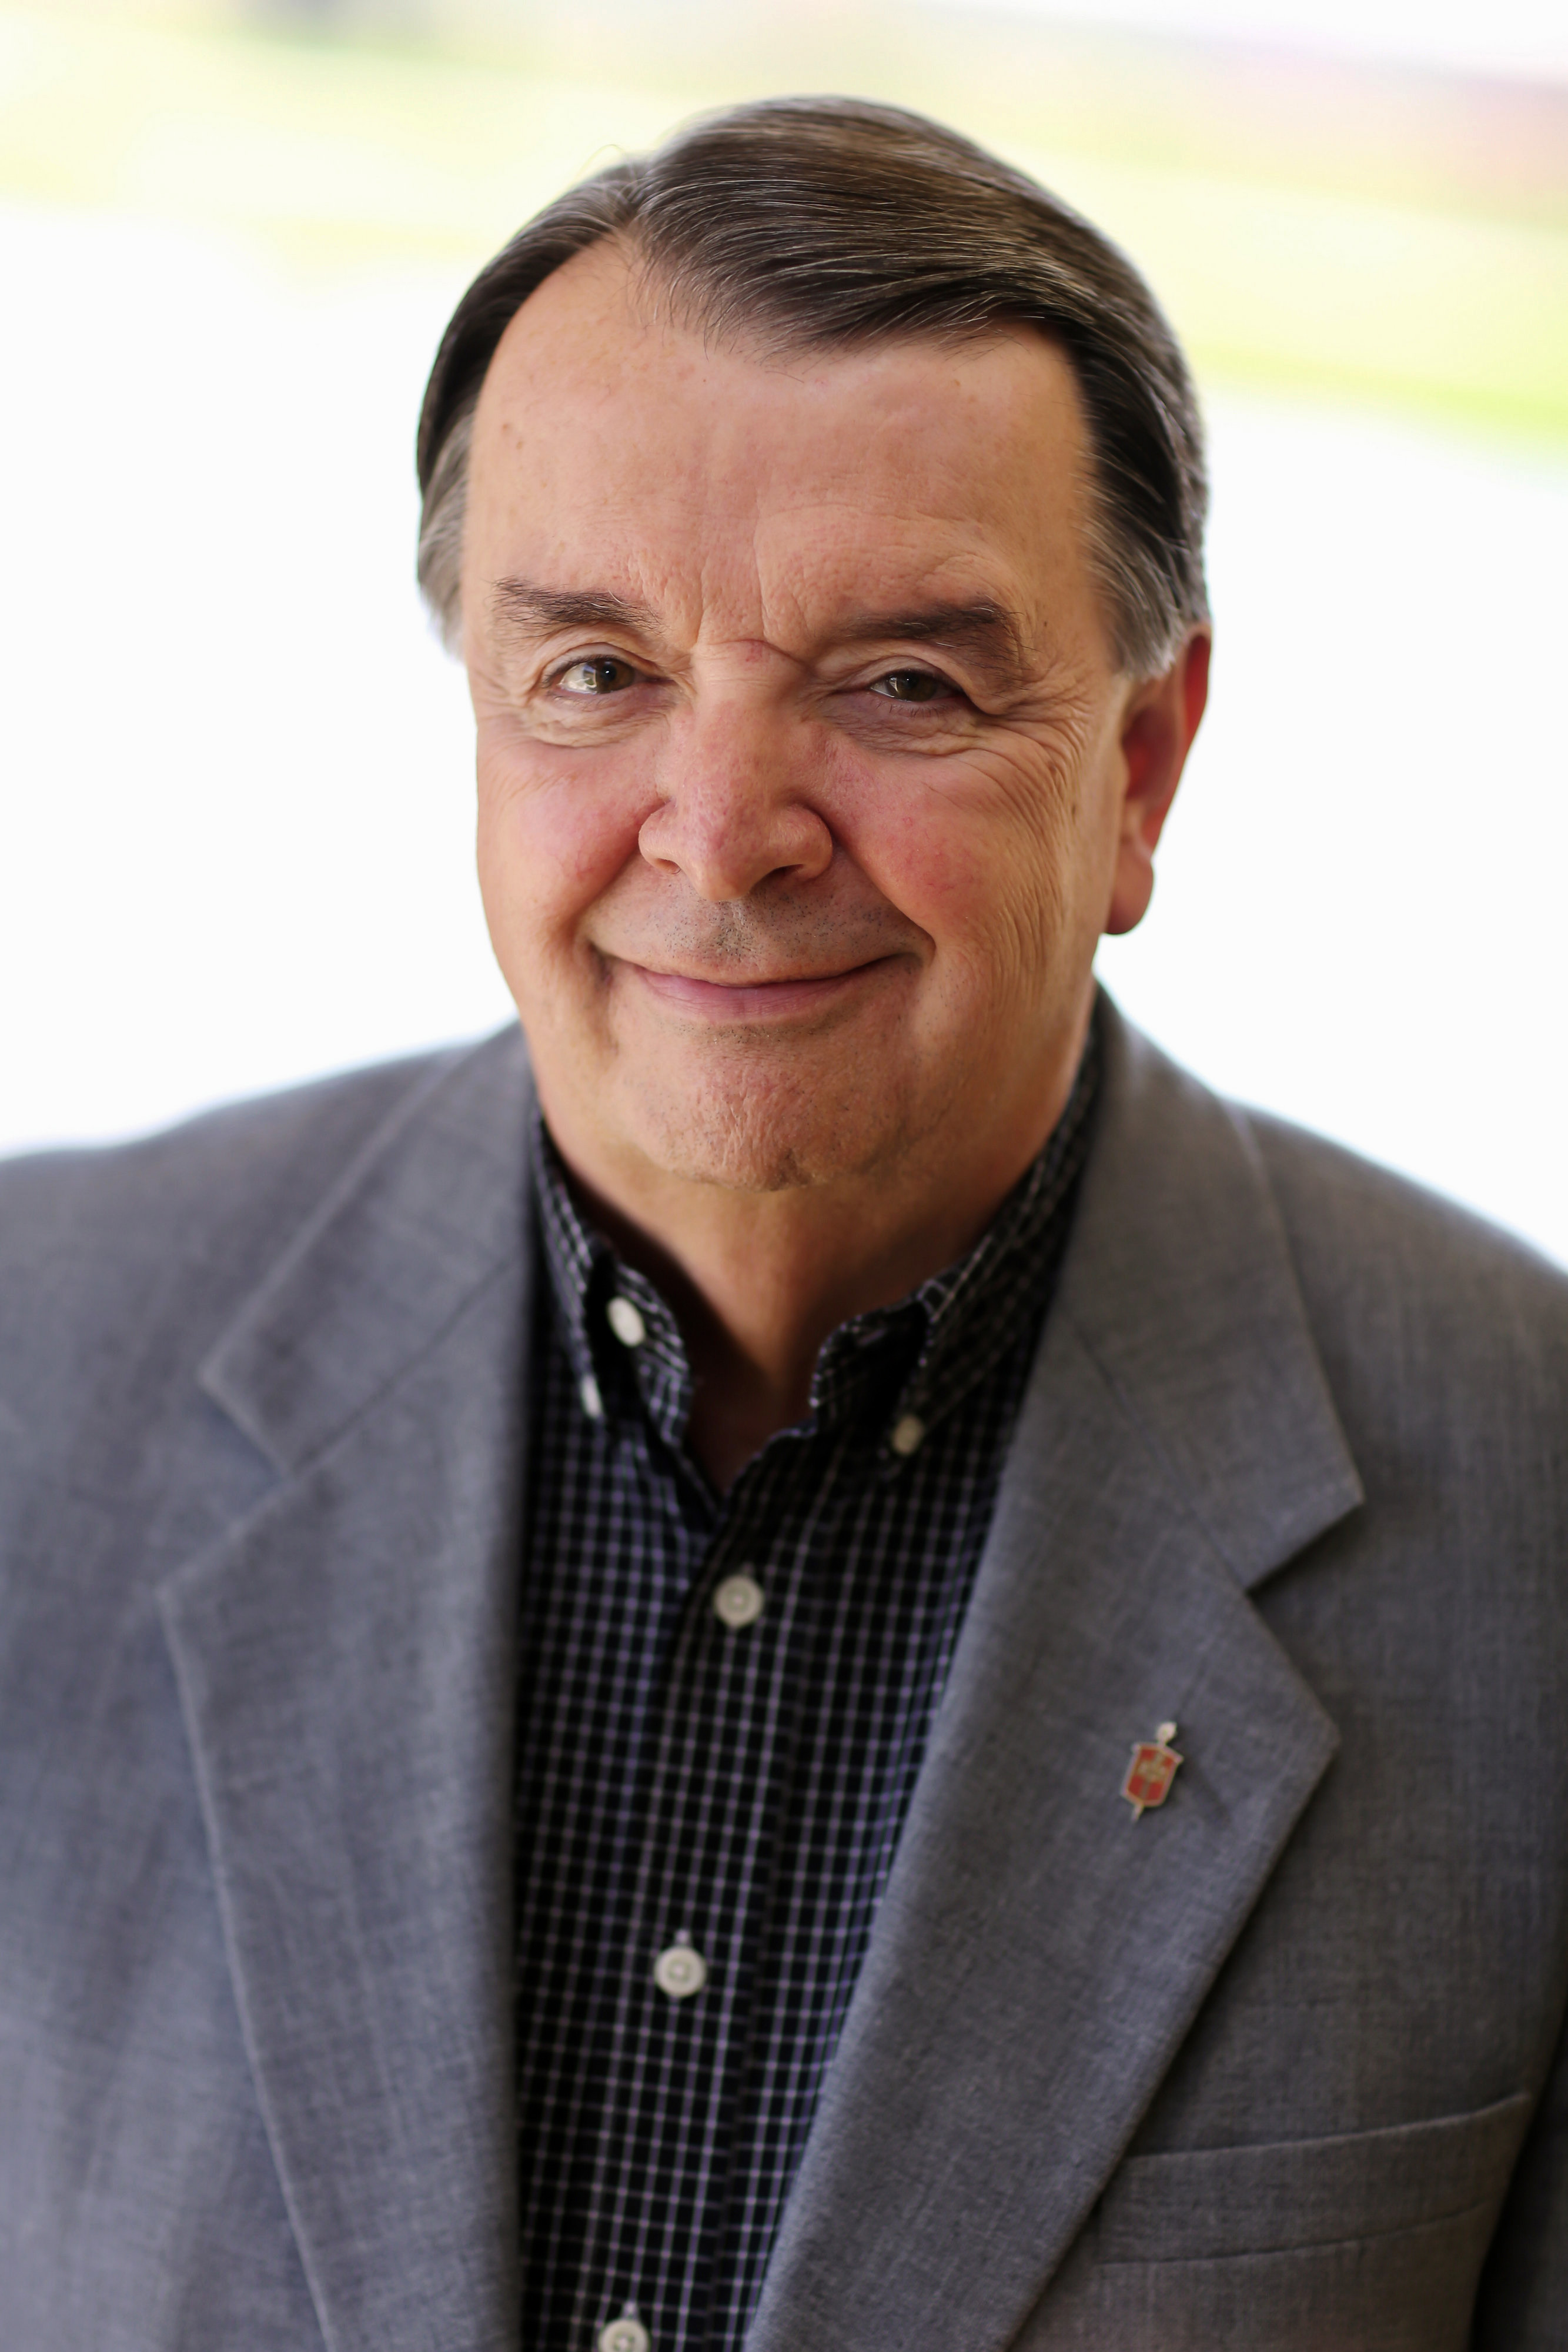 Photo of retired Bishop Michael J. Coyner, courtesy of the Indiana Conference of The United Methodist Church website.